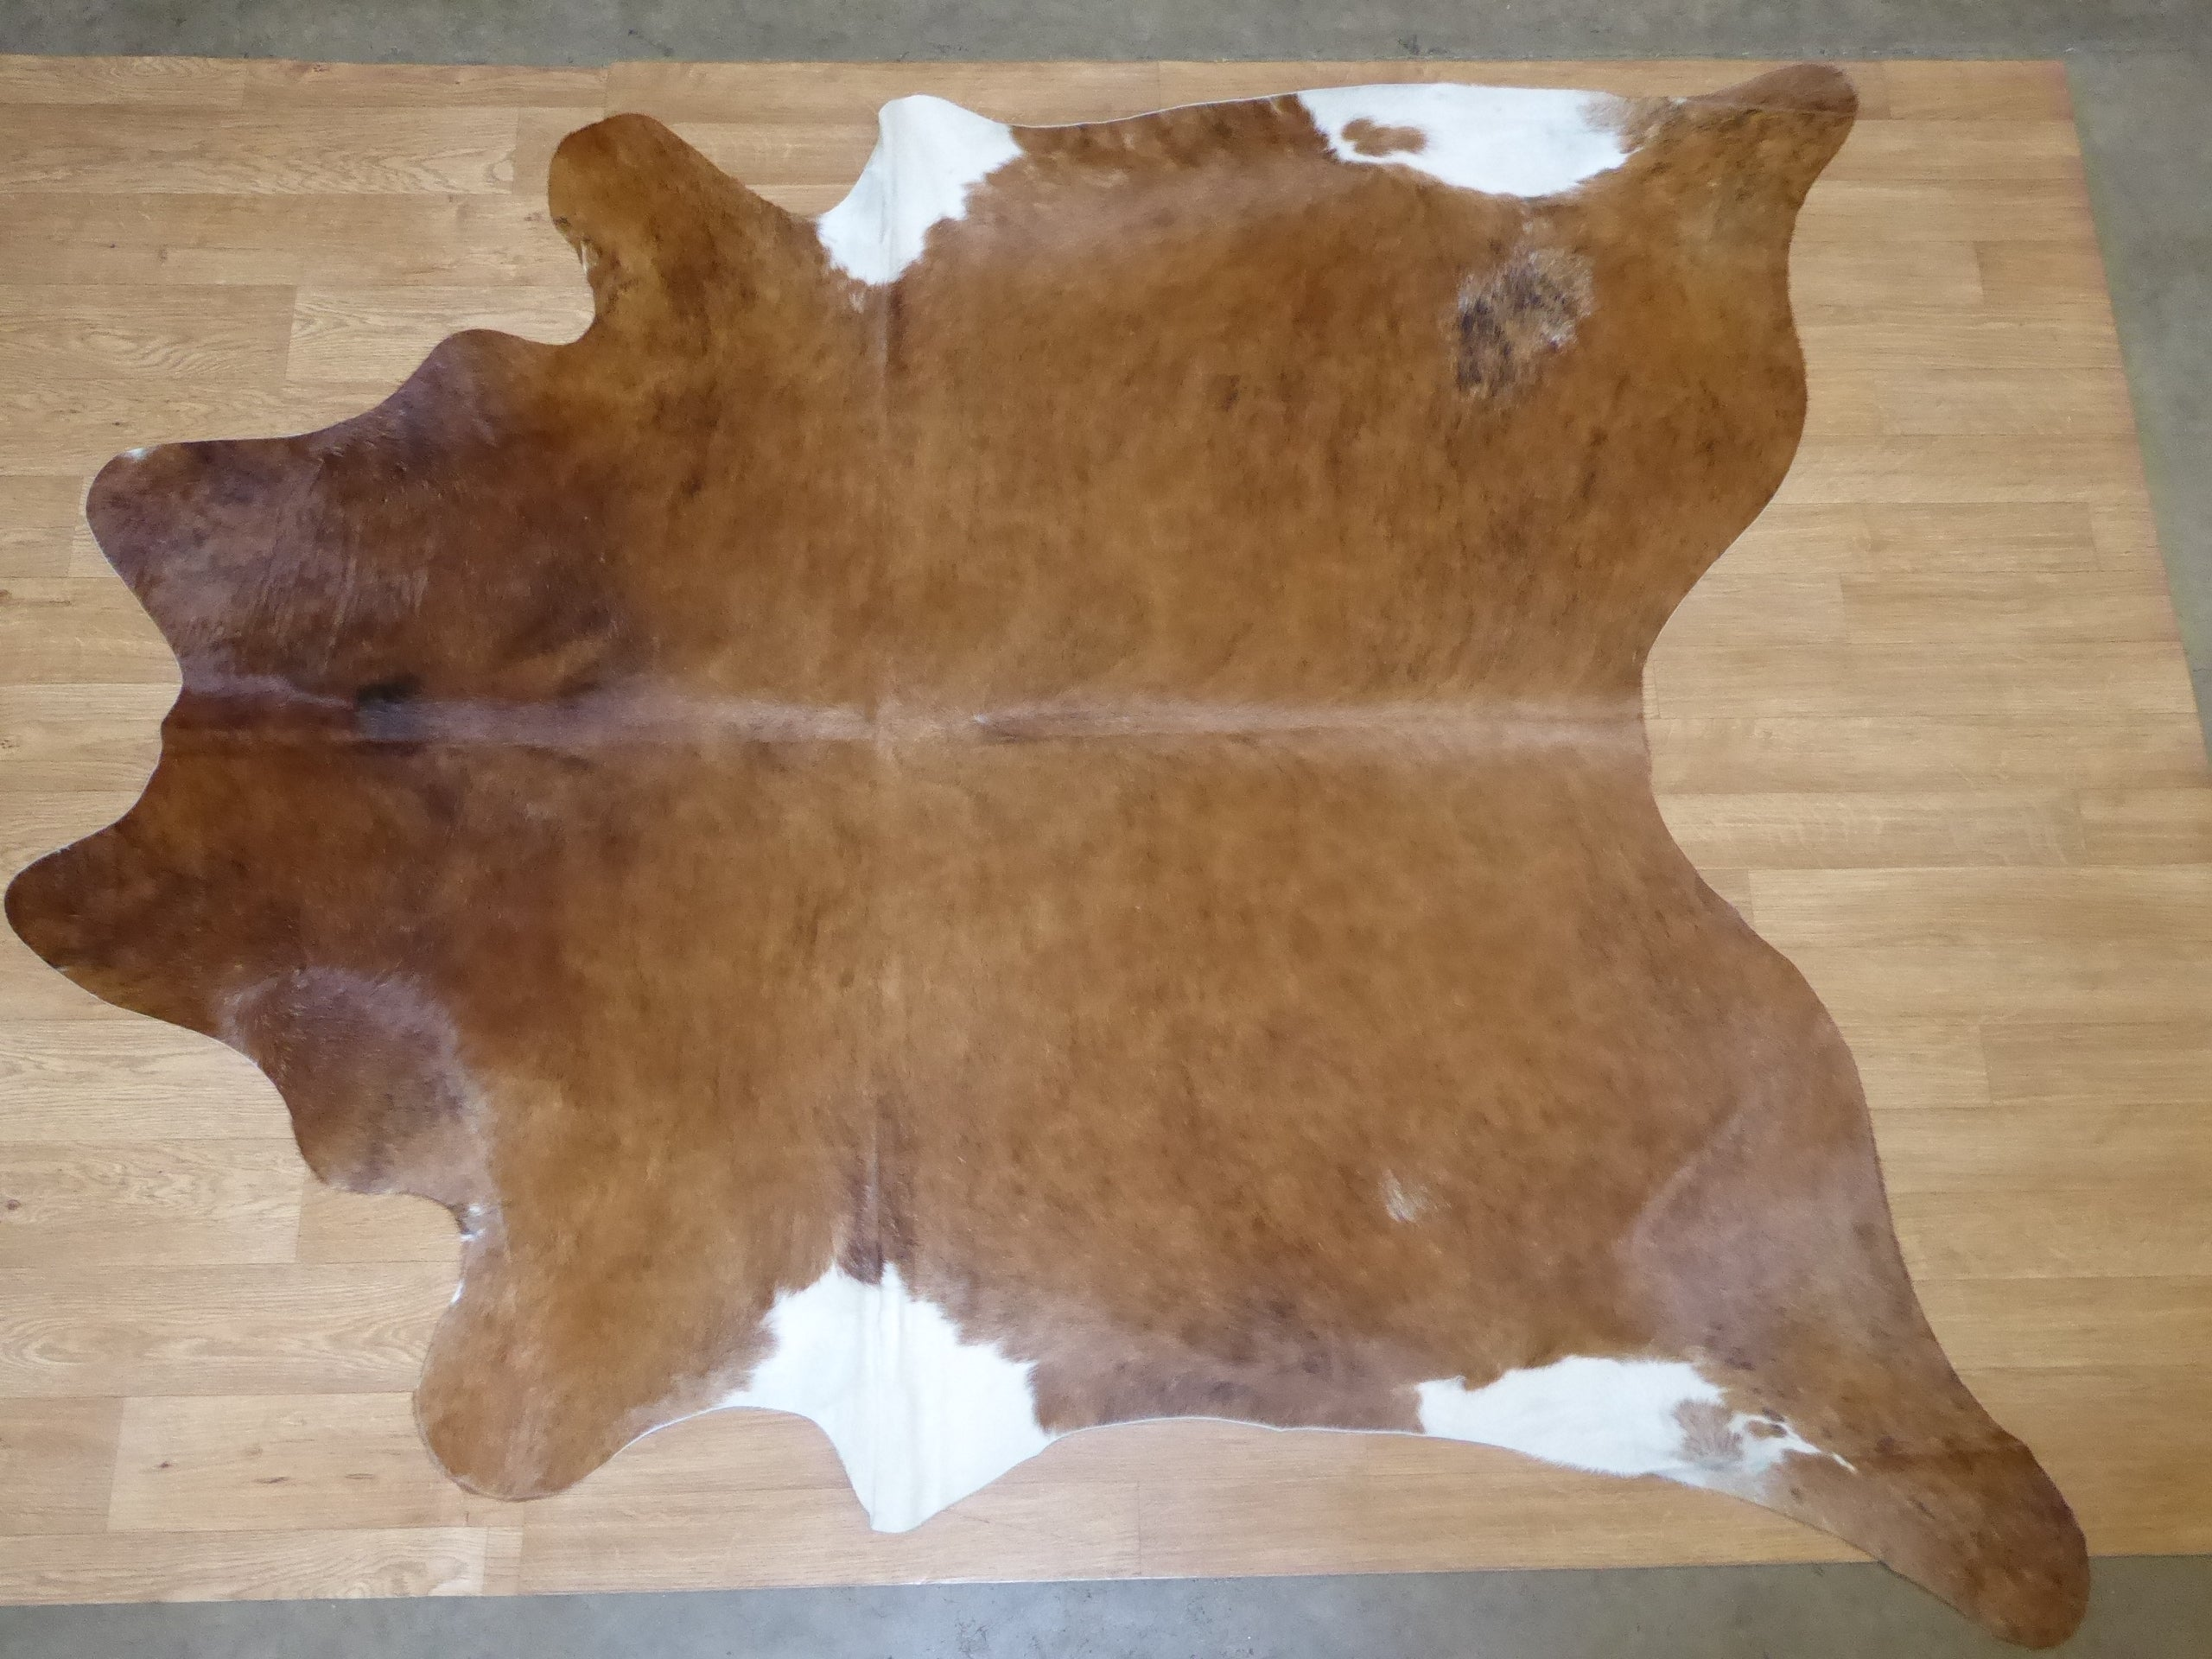 Natural Hair On Cow Hide : This Hide Is Perfect For Wall Hanging, Leather Rugs, Leather Bags & Accessories (pic code 1010984)